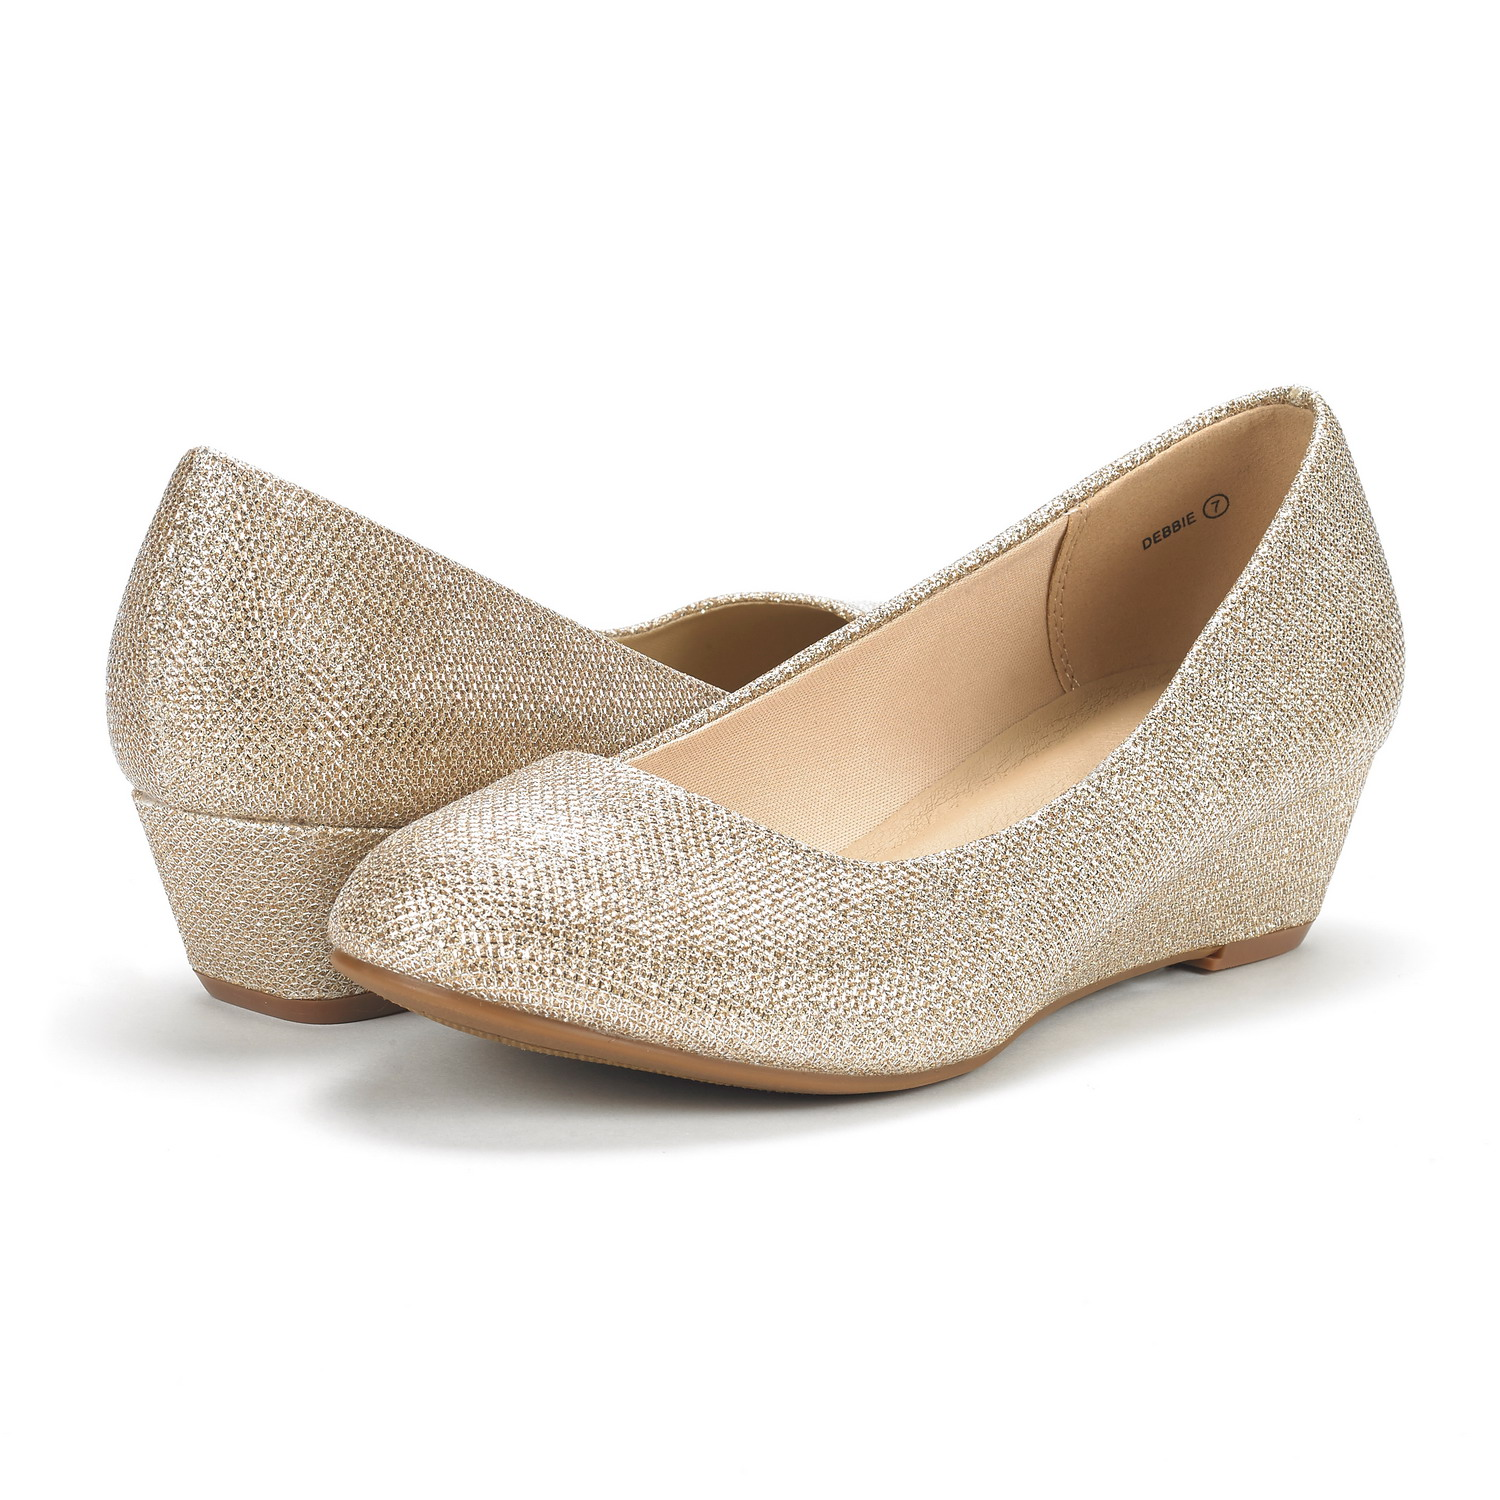 DREAM-PAIRS-Women-039-s-Mid-Wedge-Heel-Shoes-Slip-On-Comfort-Dress-Shoes-Suede-PU thumbnail 20